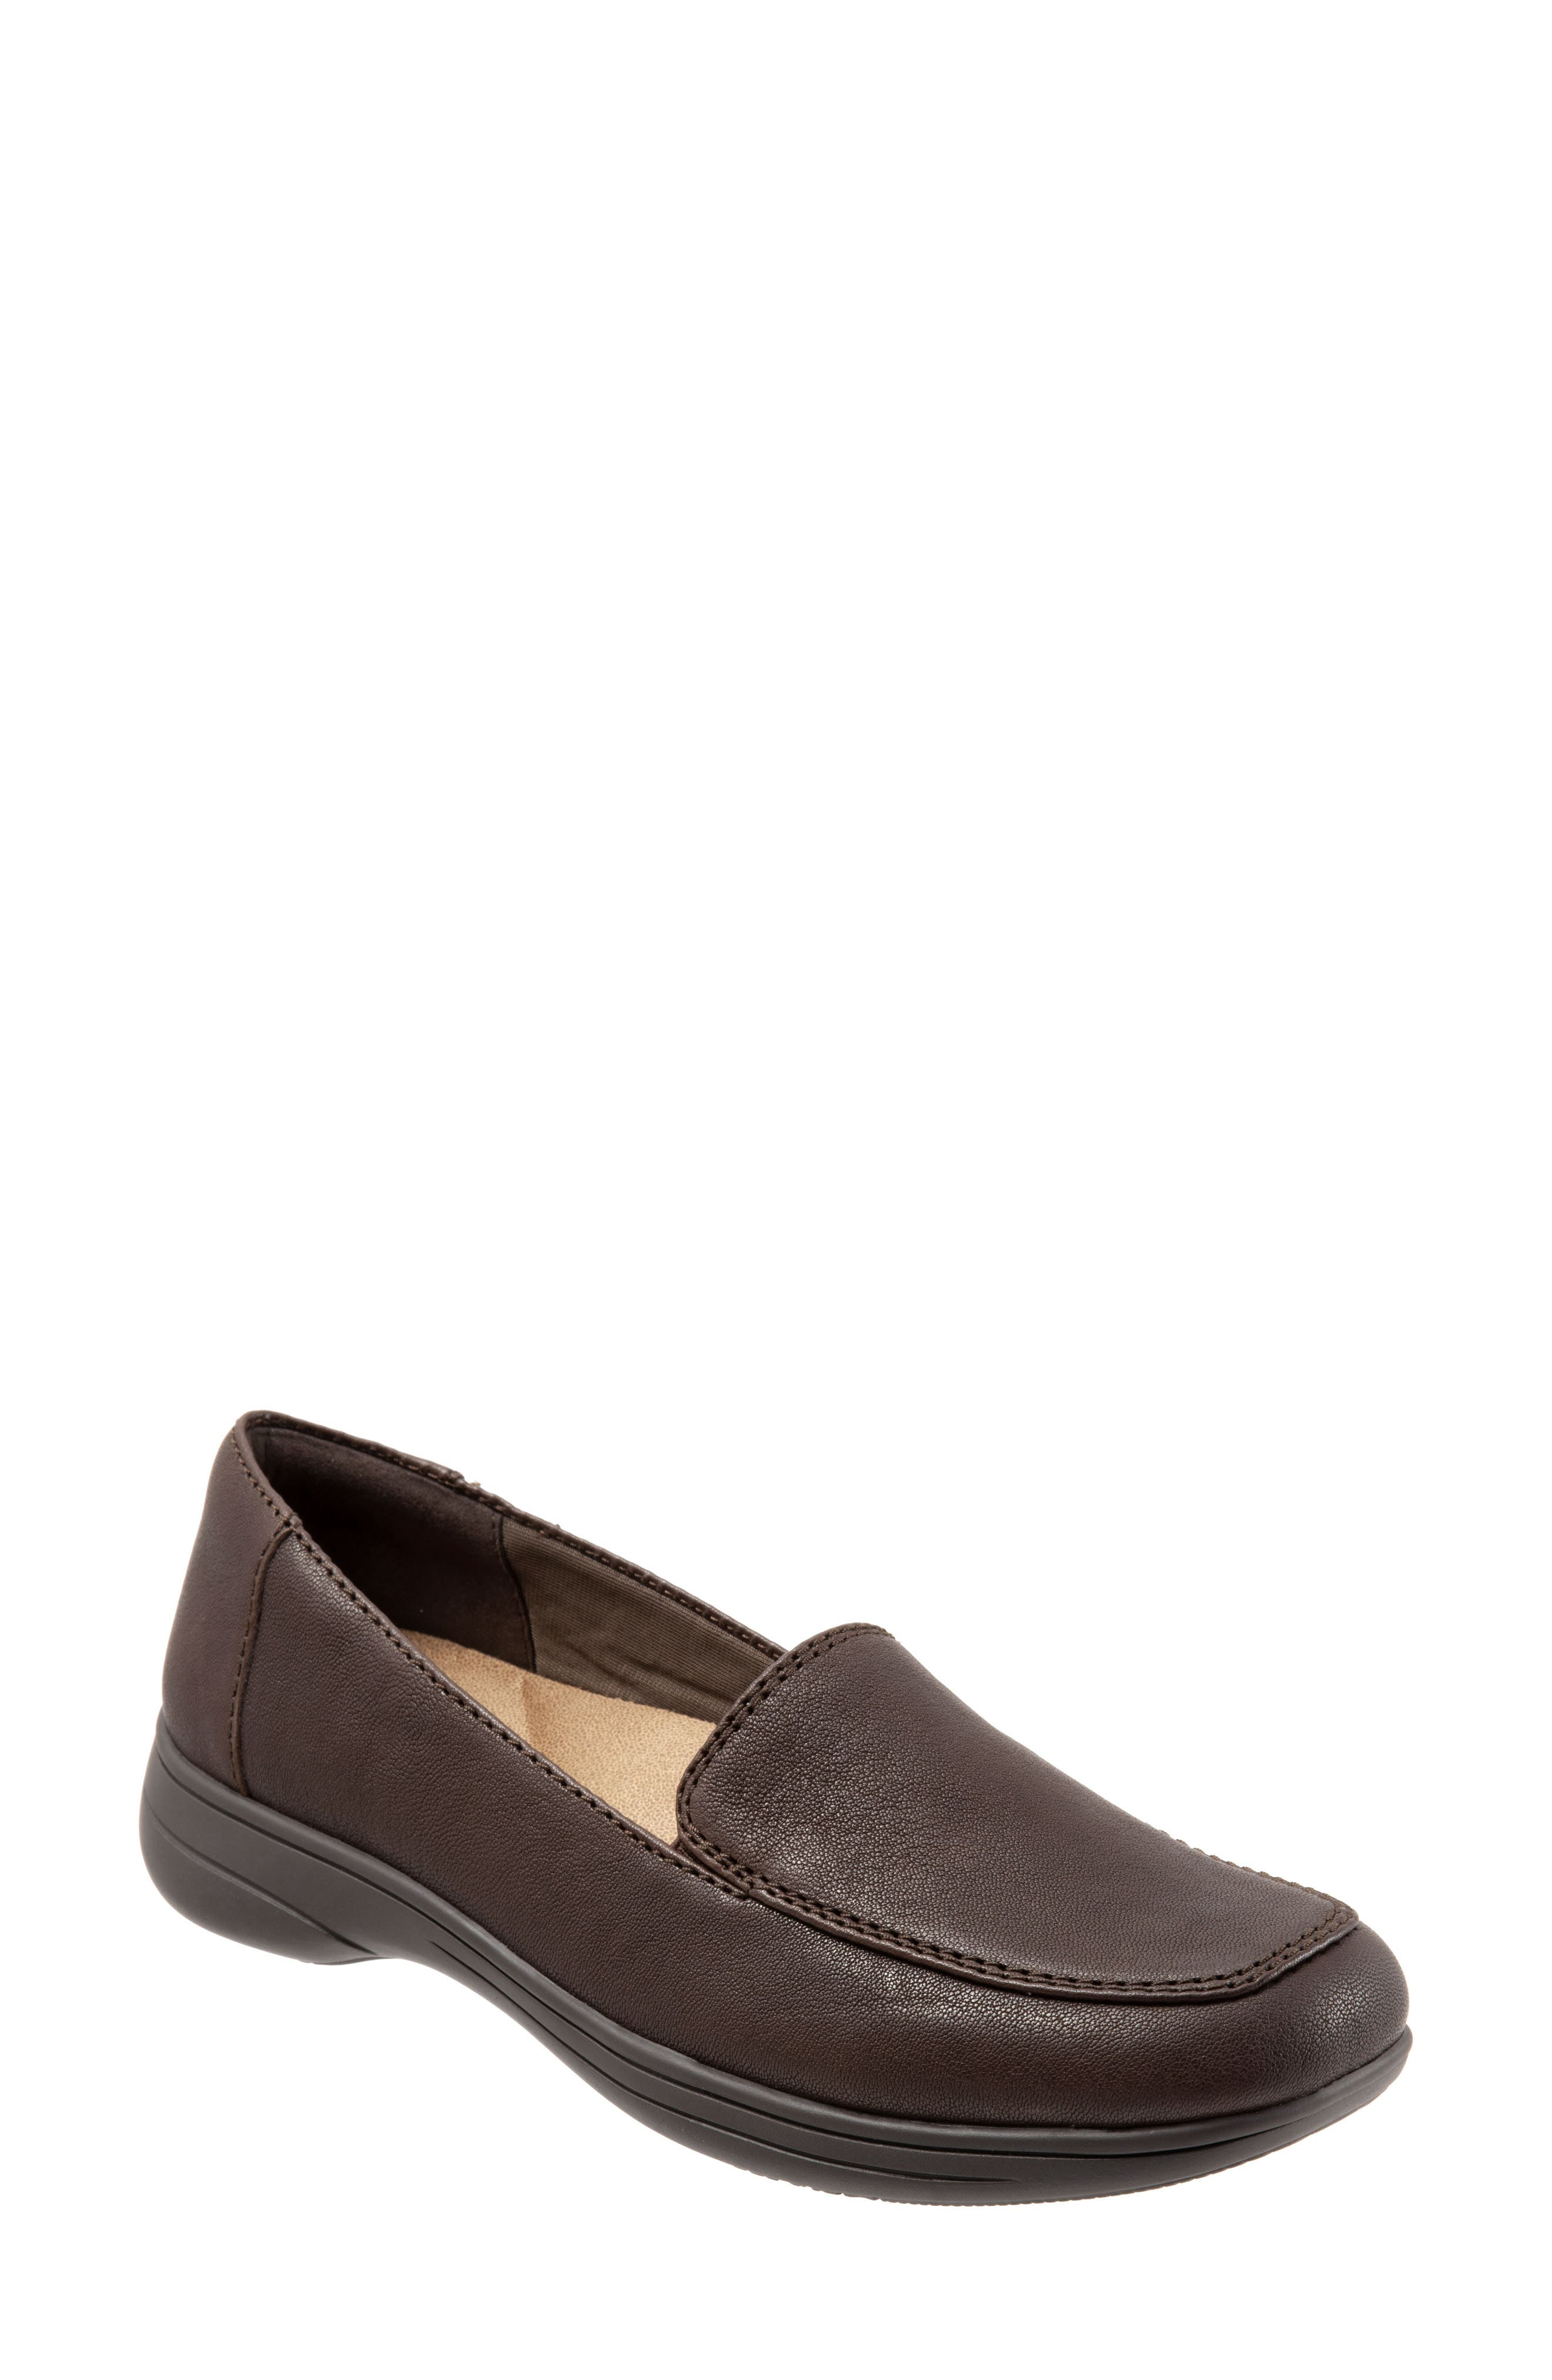 Jacob Loafer,                             Main thumbnail 1, color,                             DARK BROWN LEATHER